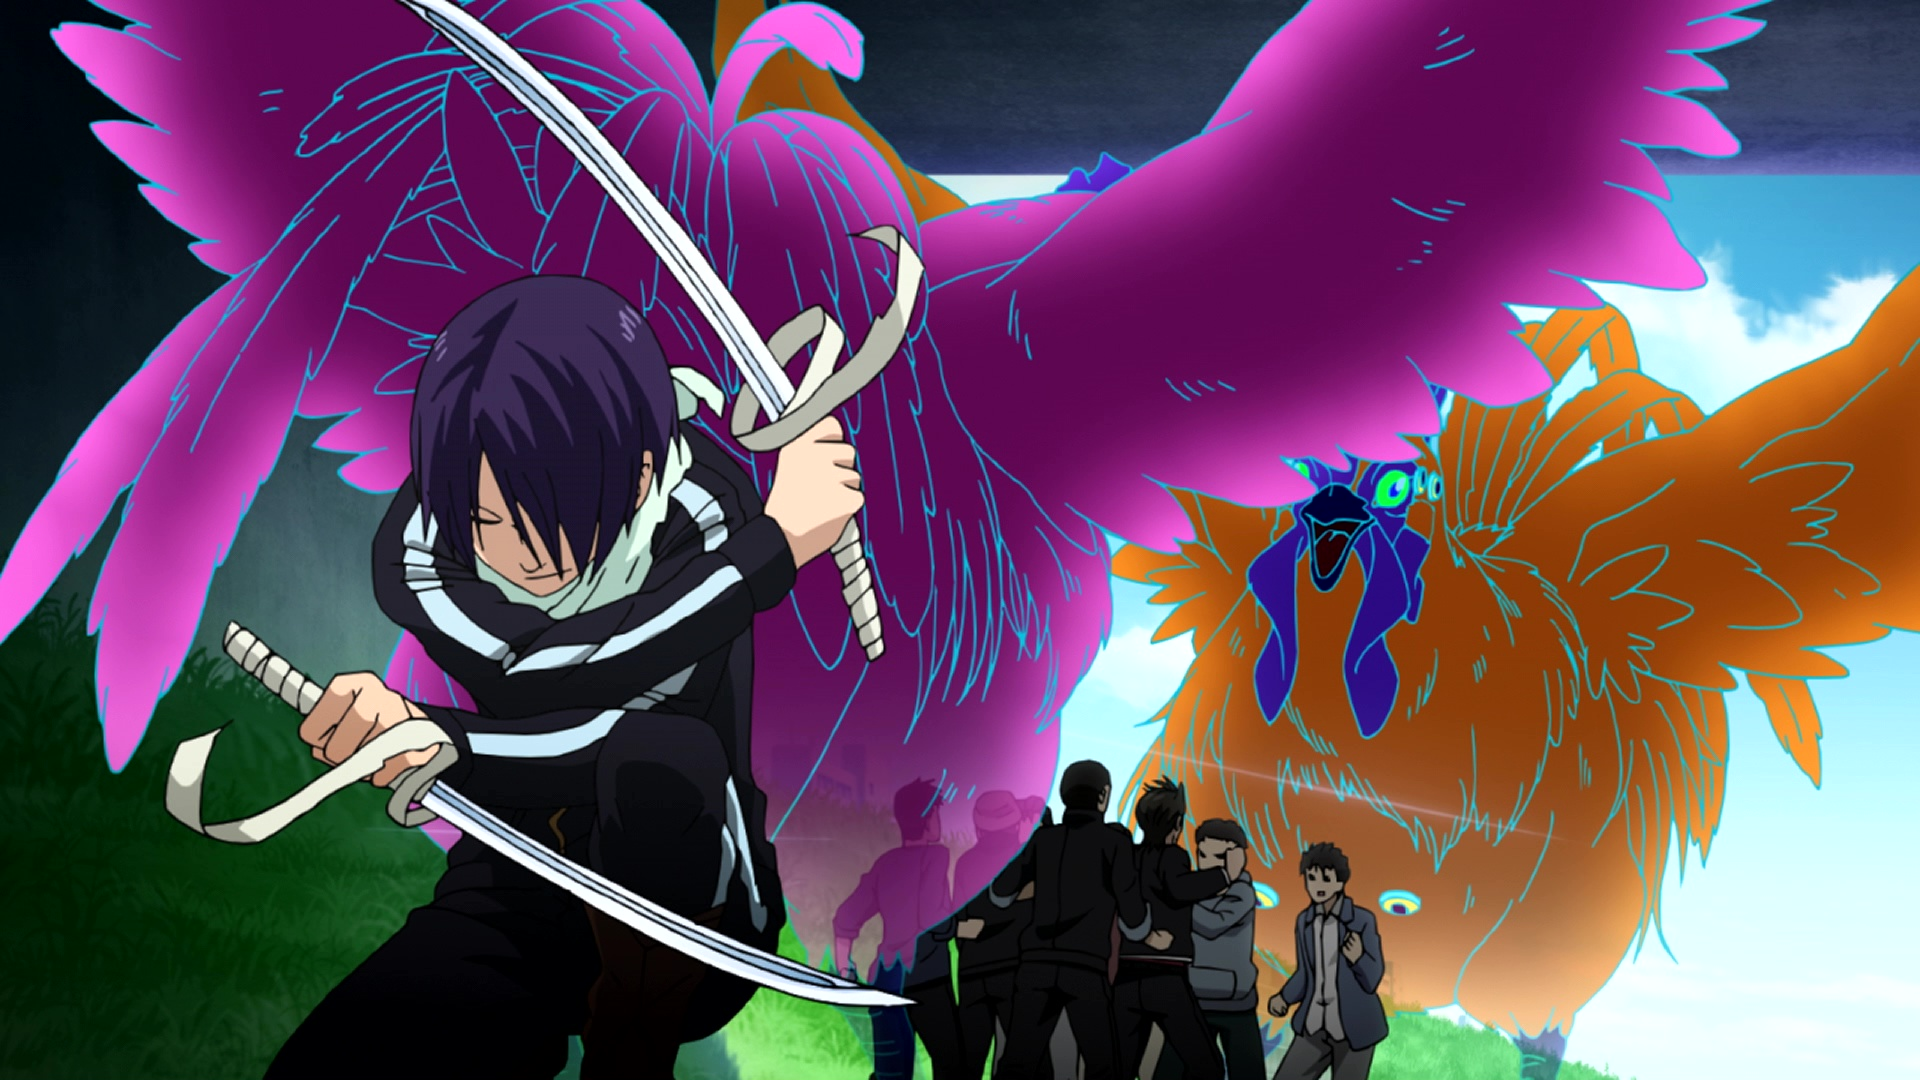 Watch Noragami Season 2 Episode 20 Anime on Funimation